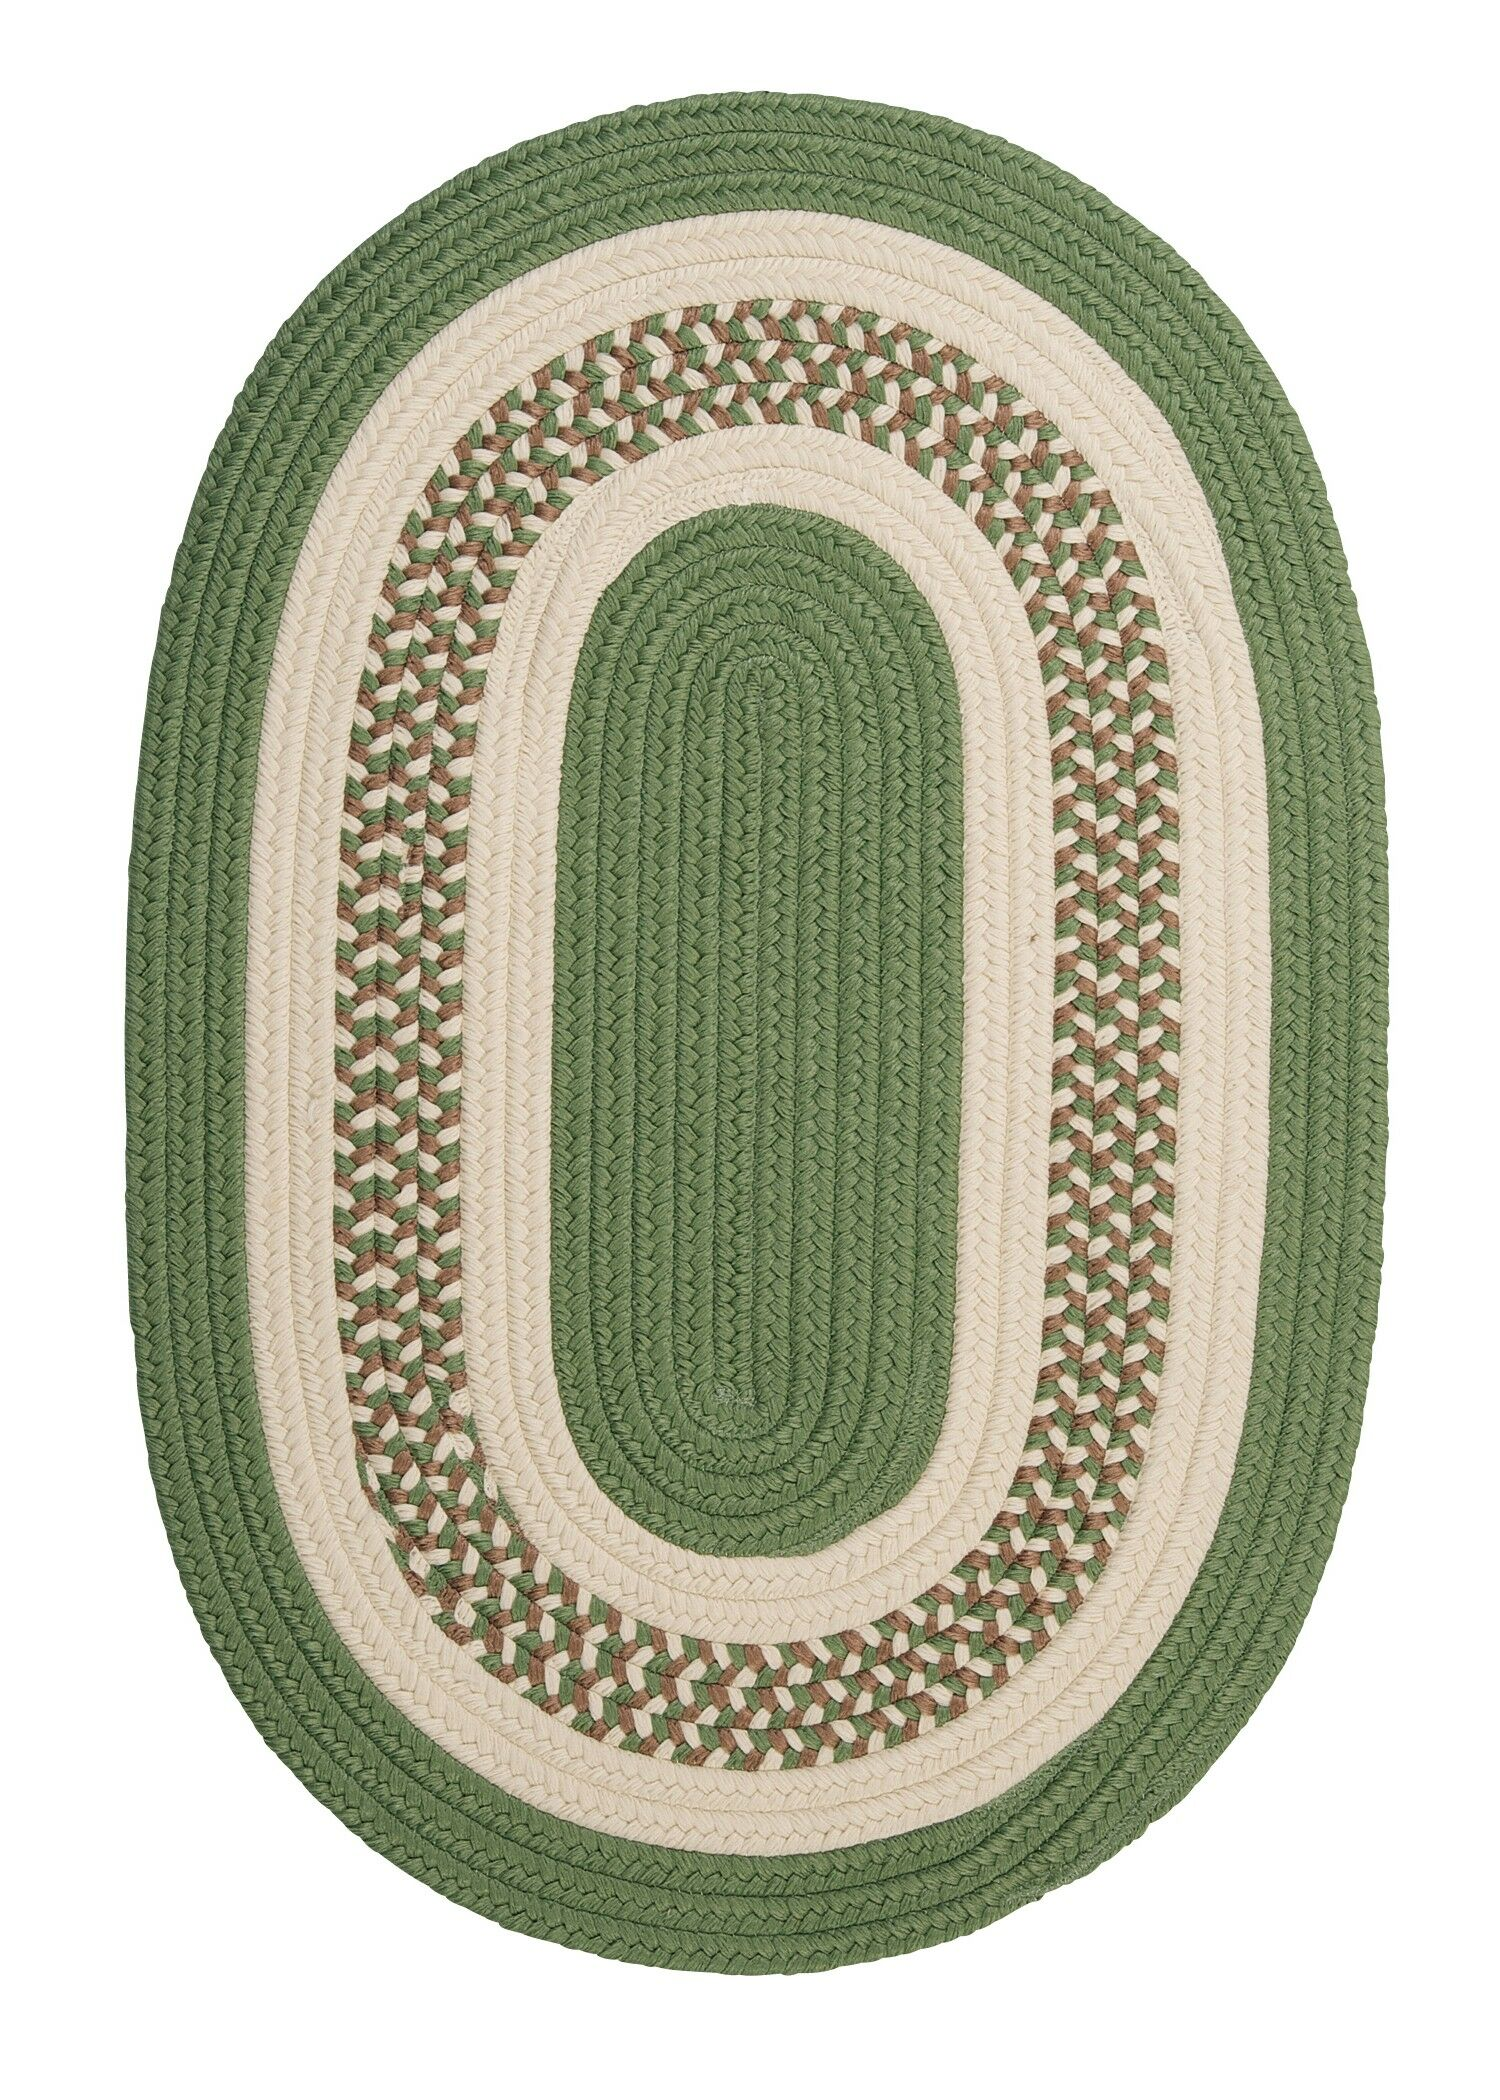 Rockport Moss Green Indoor/Outdoor Rug Rug Size: Oval Runner 2' x 8'